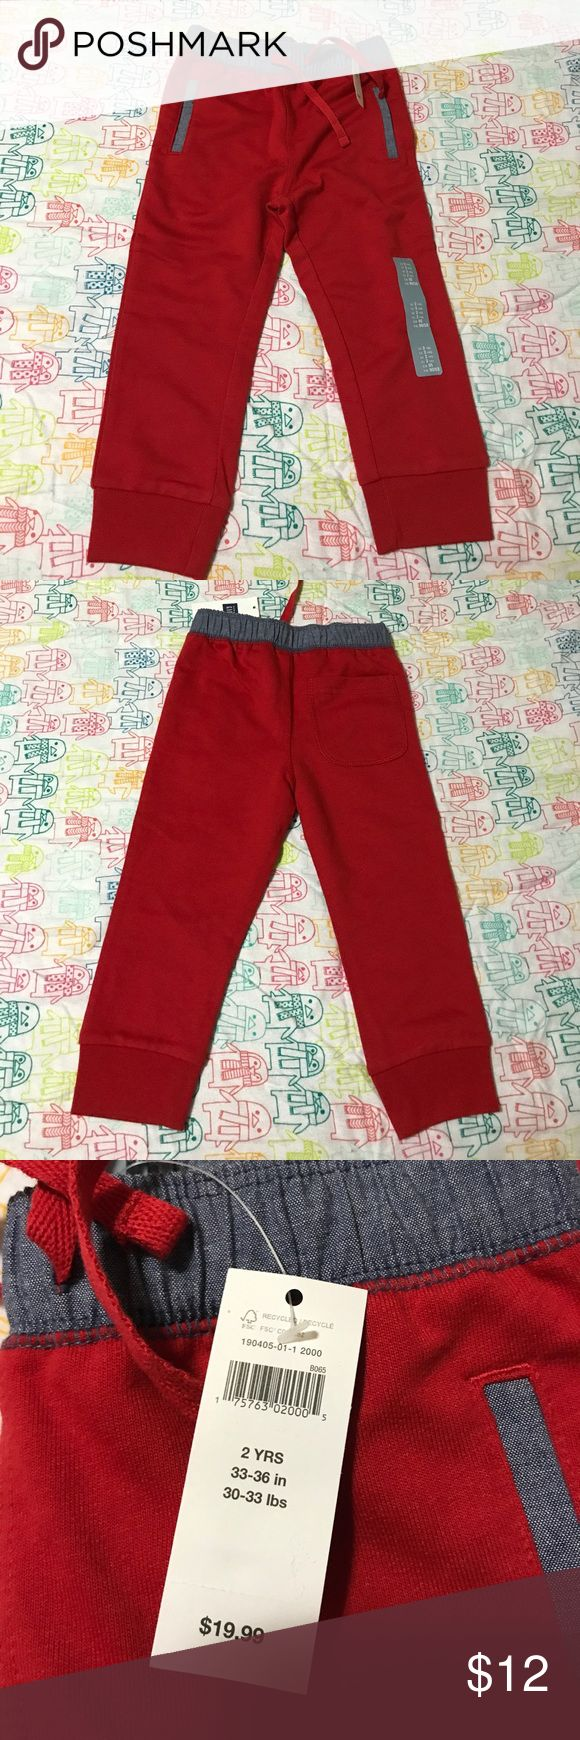 Baby Gap Red Joggers Size 2T brand new with original tags still attached GAP Bottoms Sweatpants & Joggers